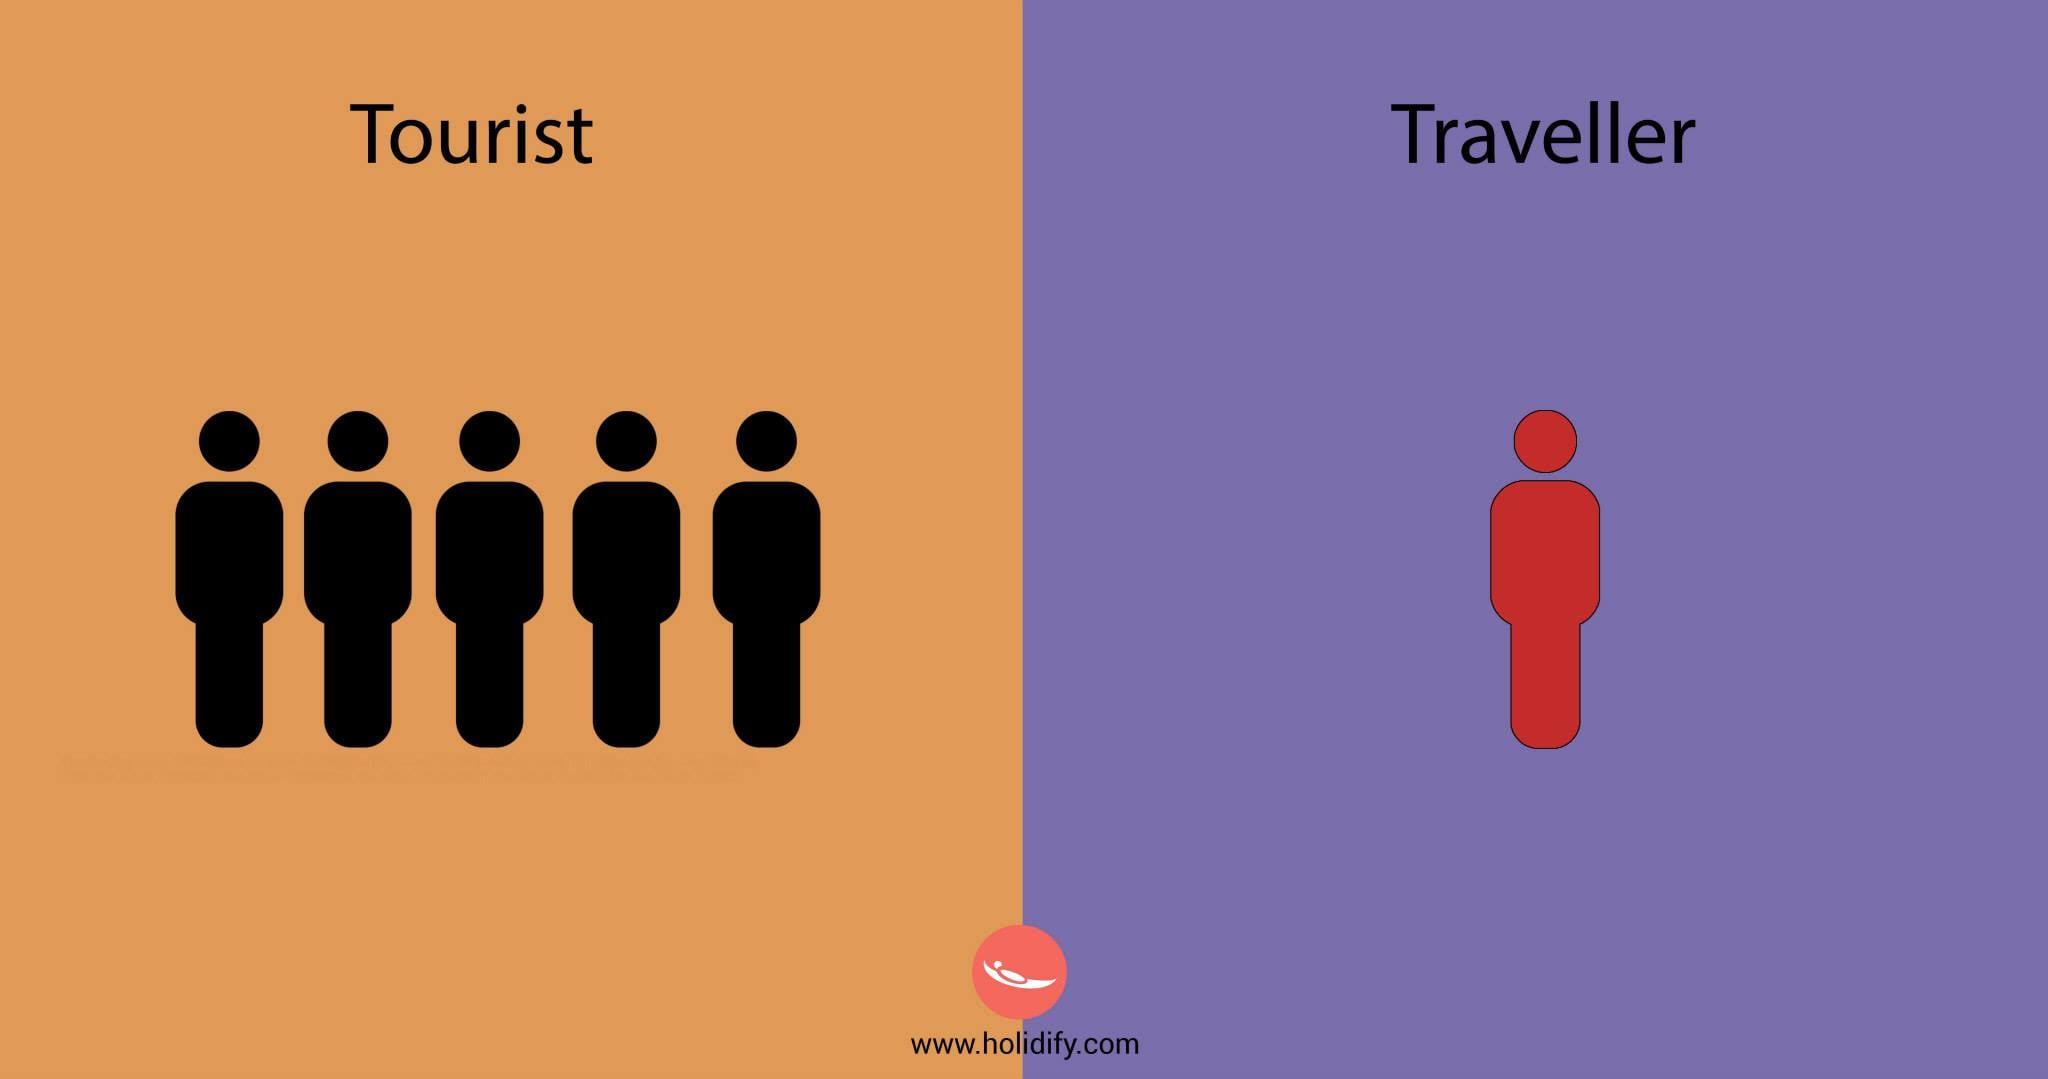 tourist-vs-traveller-freeyork-7